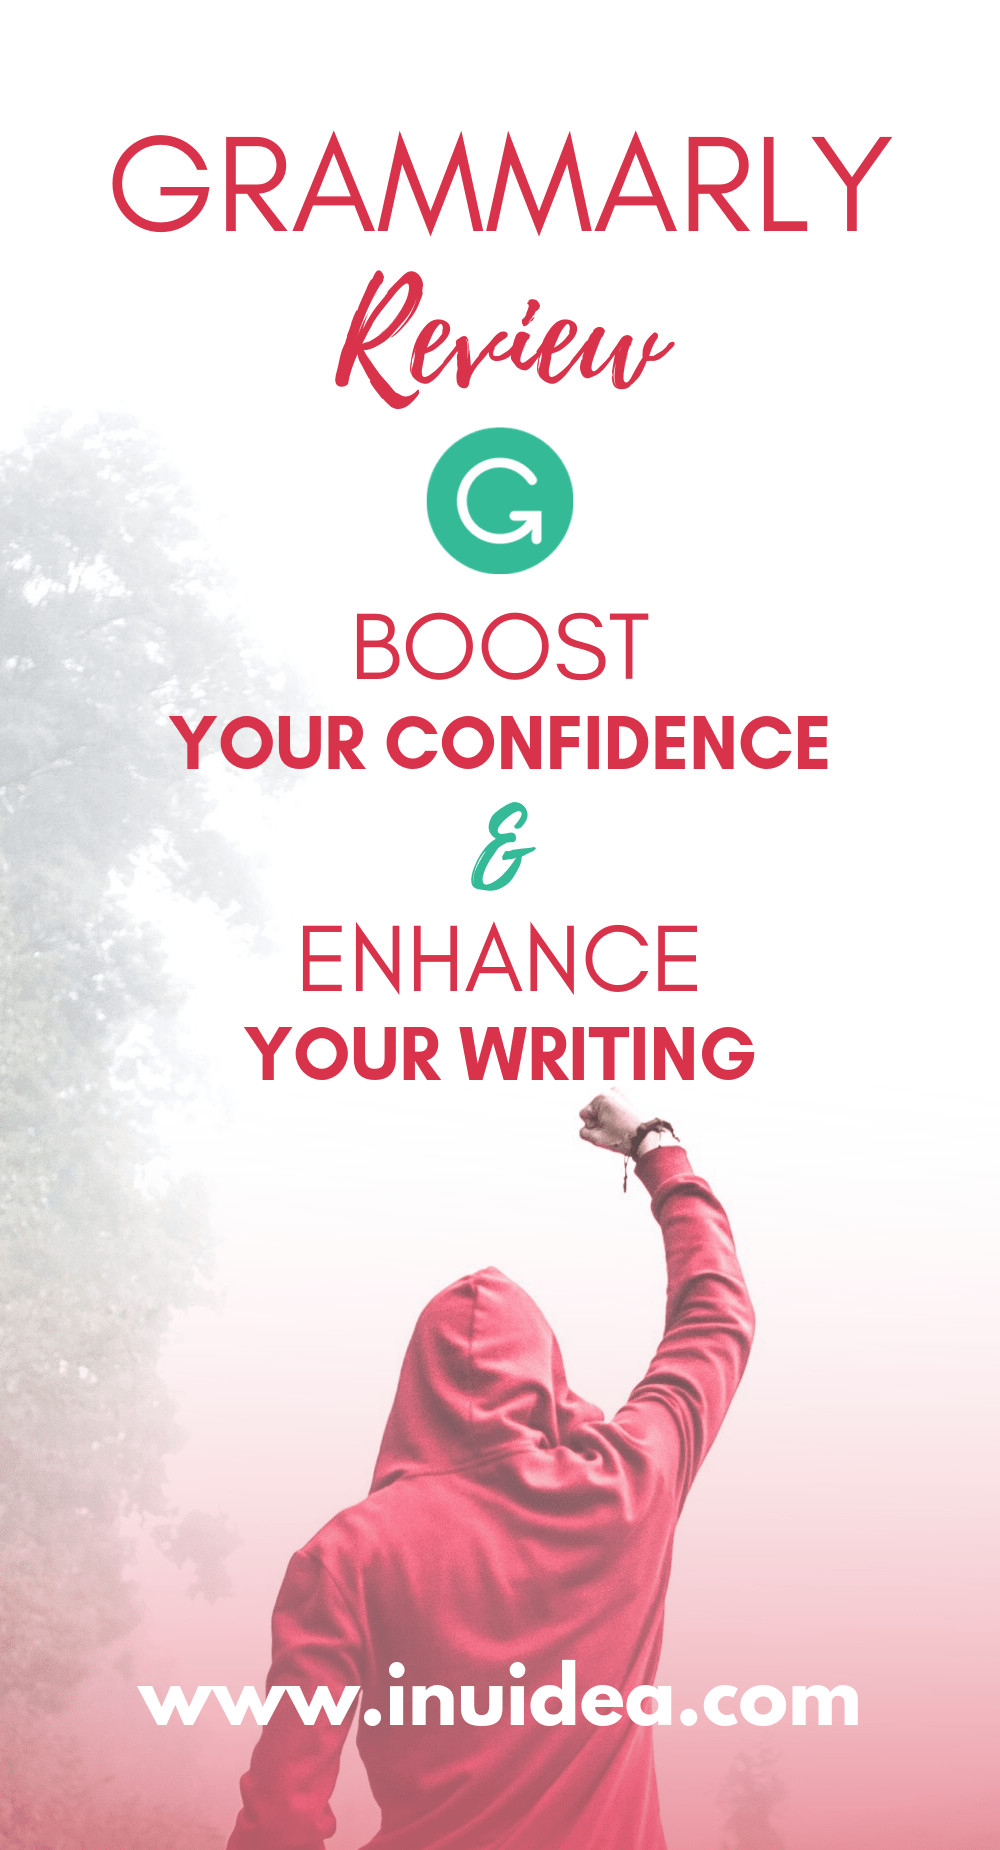 Buy Grammarly Promotional Code 80 Off